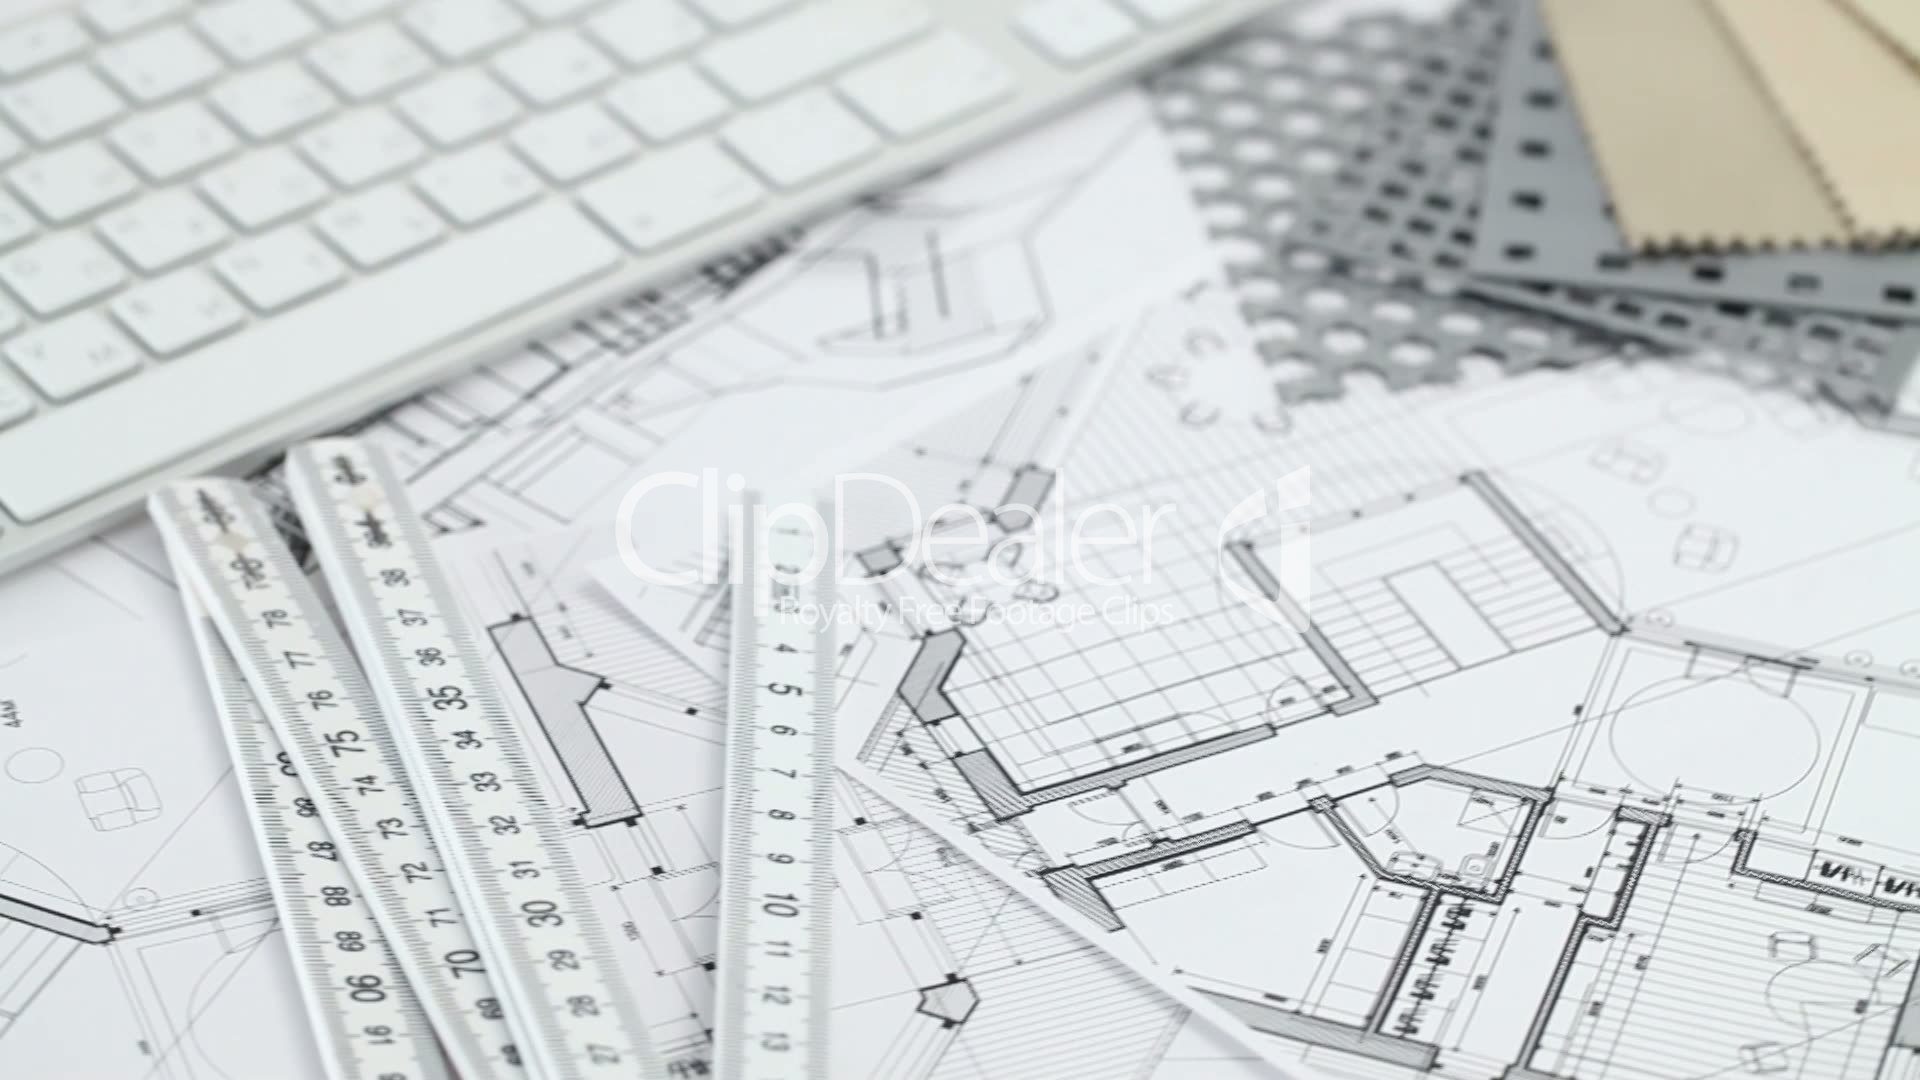 Video Footage Clip   Keyboard U0026 Architectural Plans